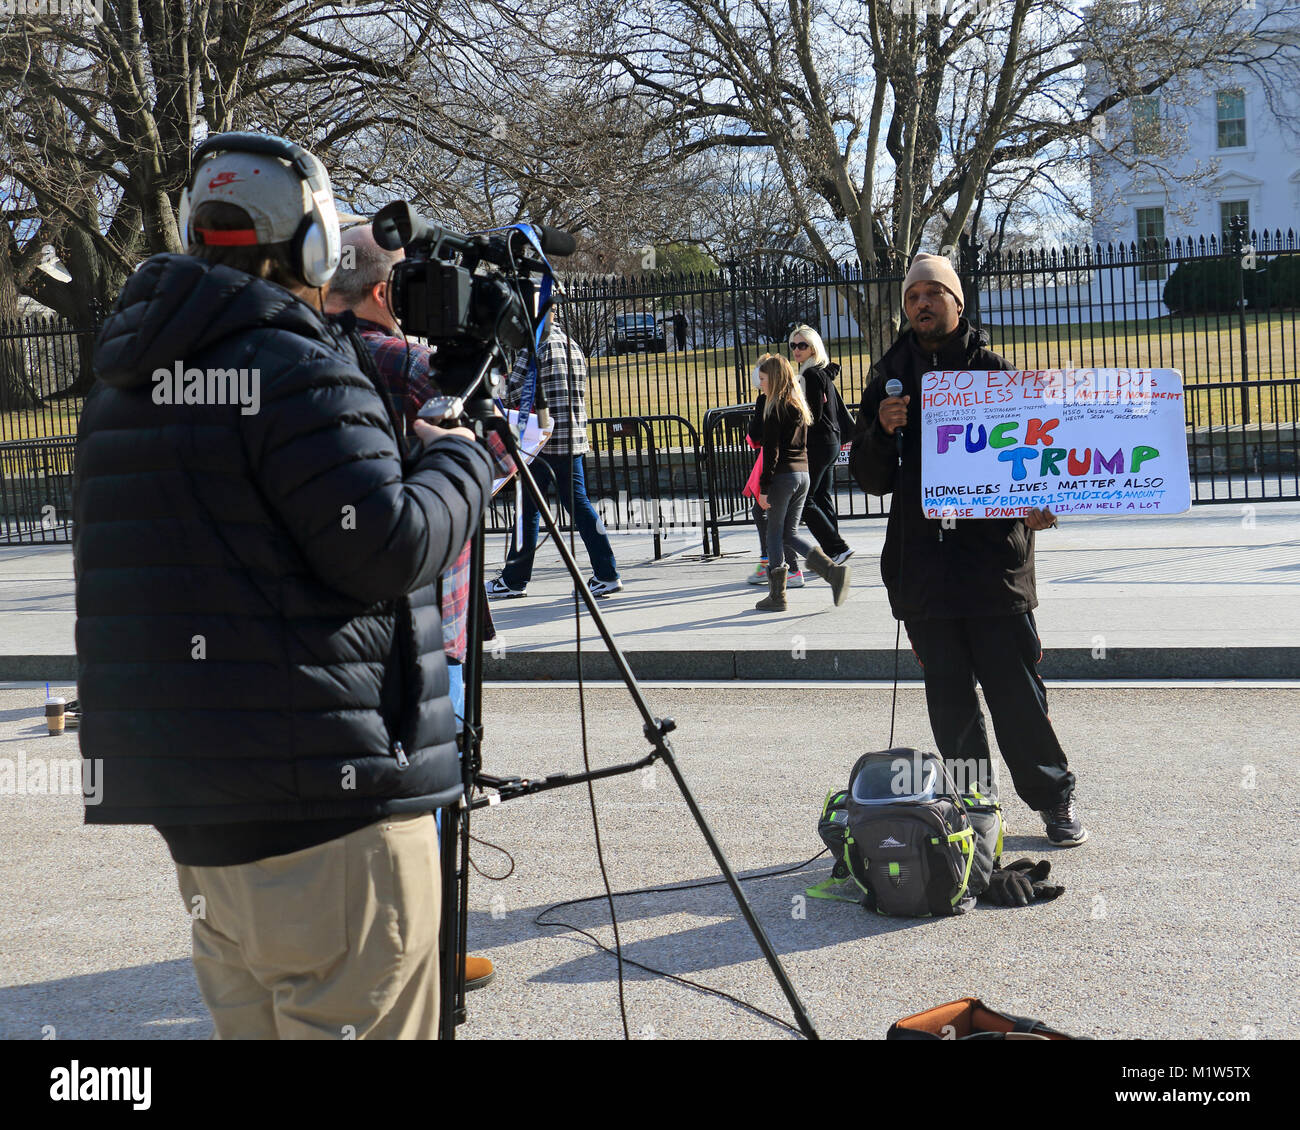 Homeless veteran speaks his mind in front of the white house - Stock Image